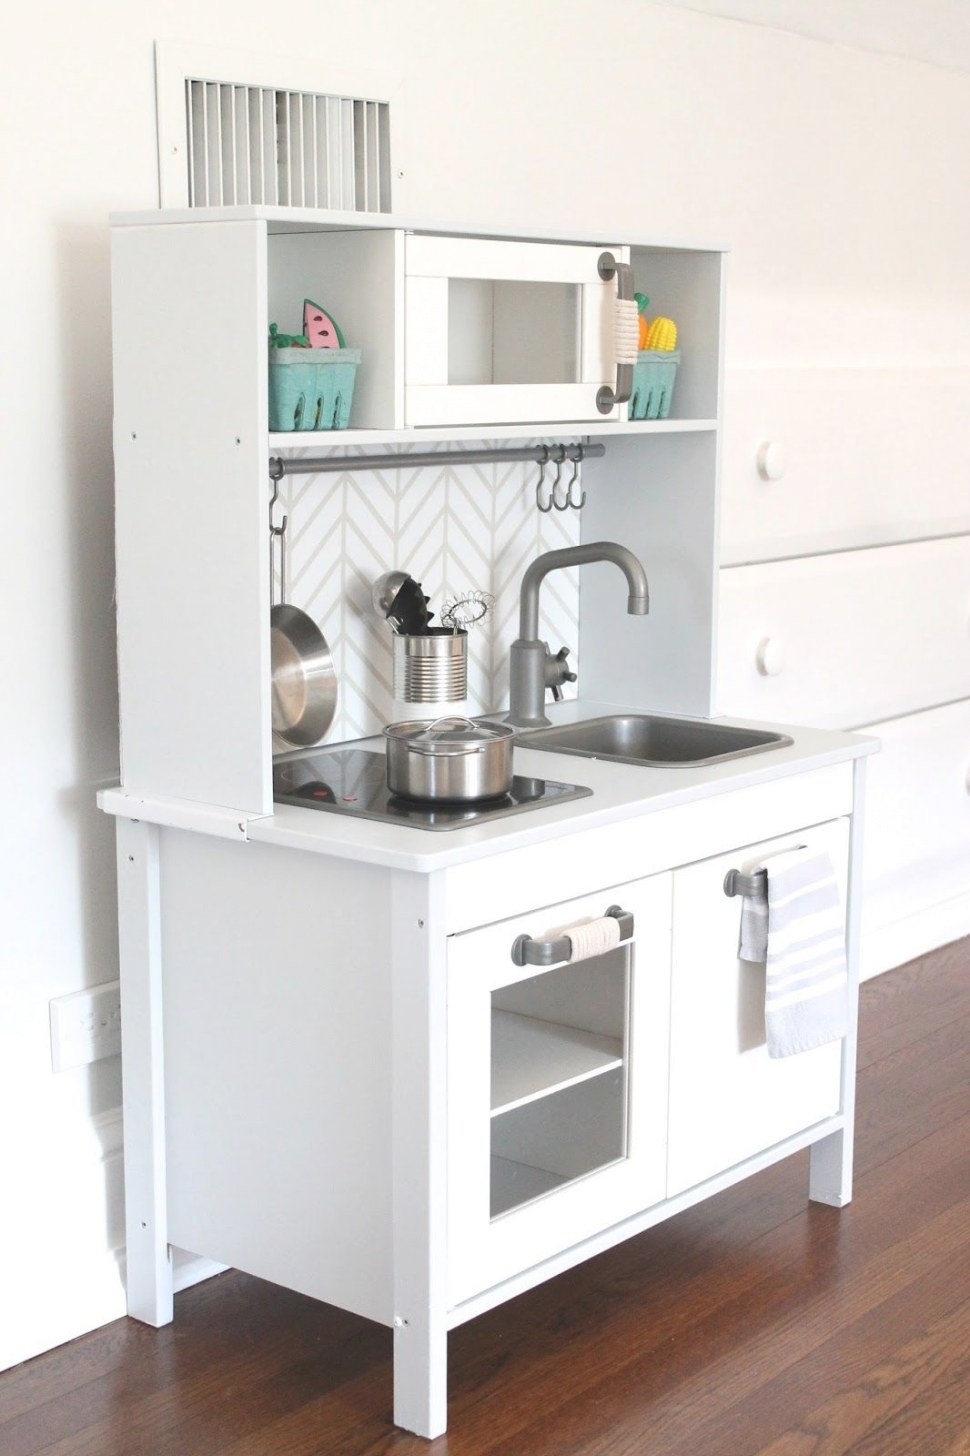 Recently I Shared On Instagram How I Picked Up The Ikea with Ikea Kitchen Sale 2019